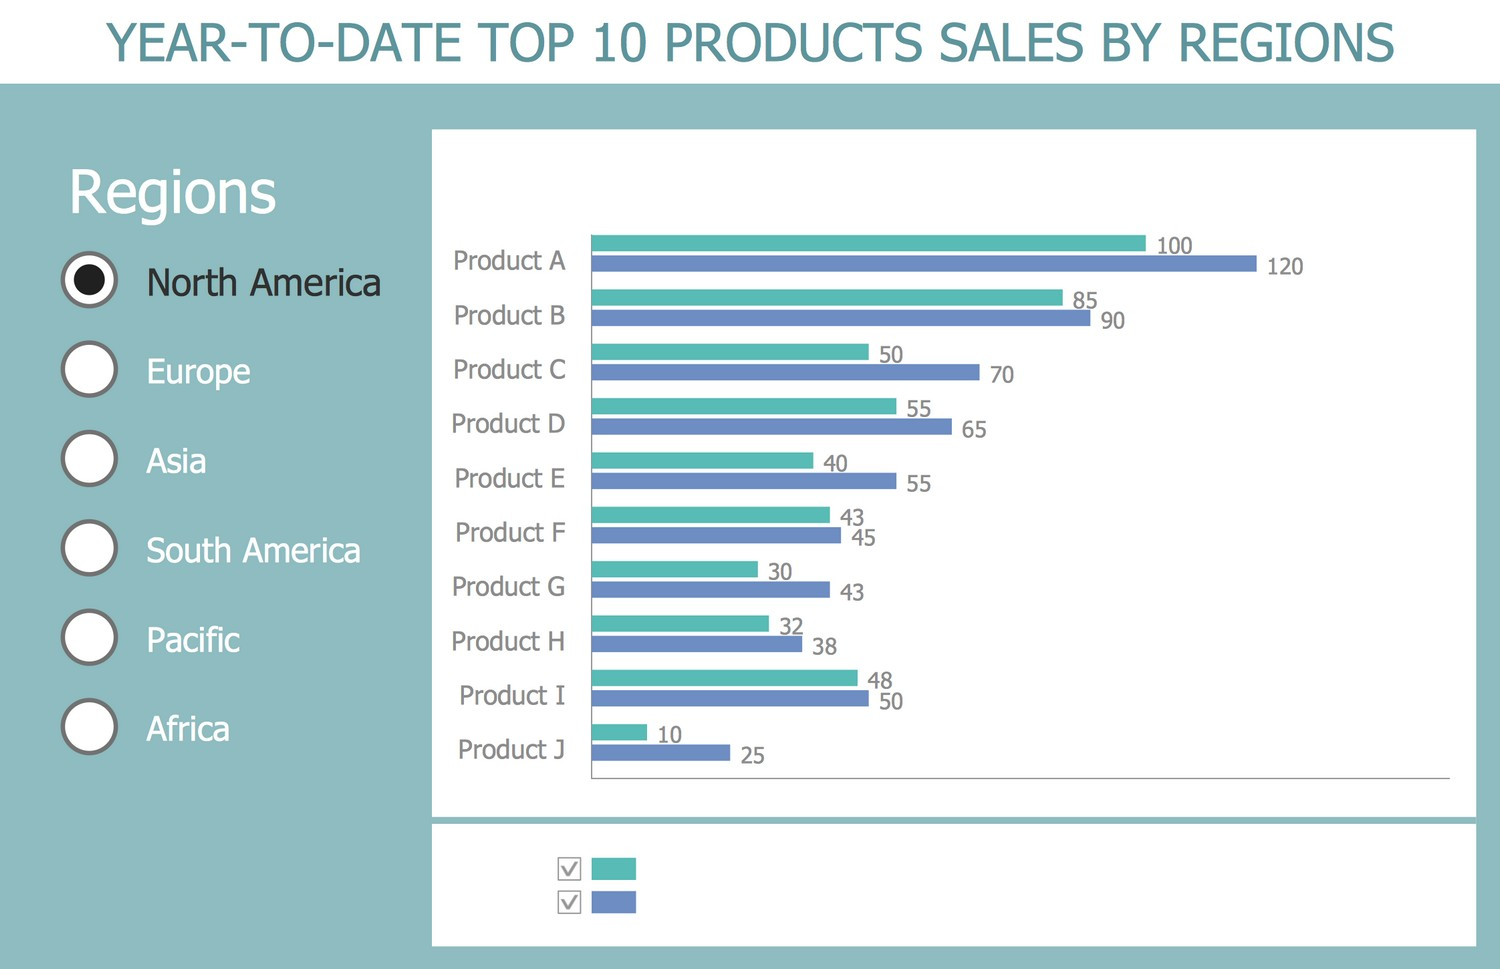 Business Intelligence Dashboard - Year-to-date Top 10 Products Sales by Regions